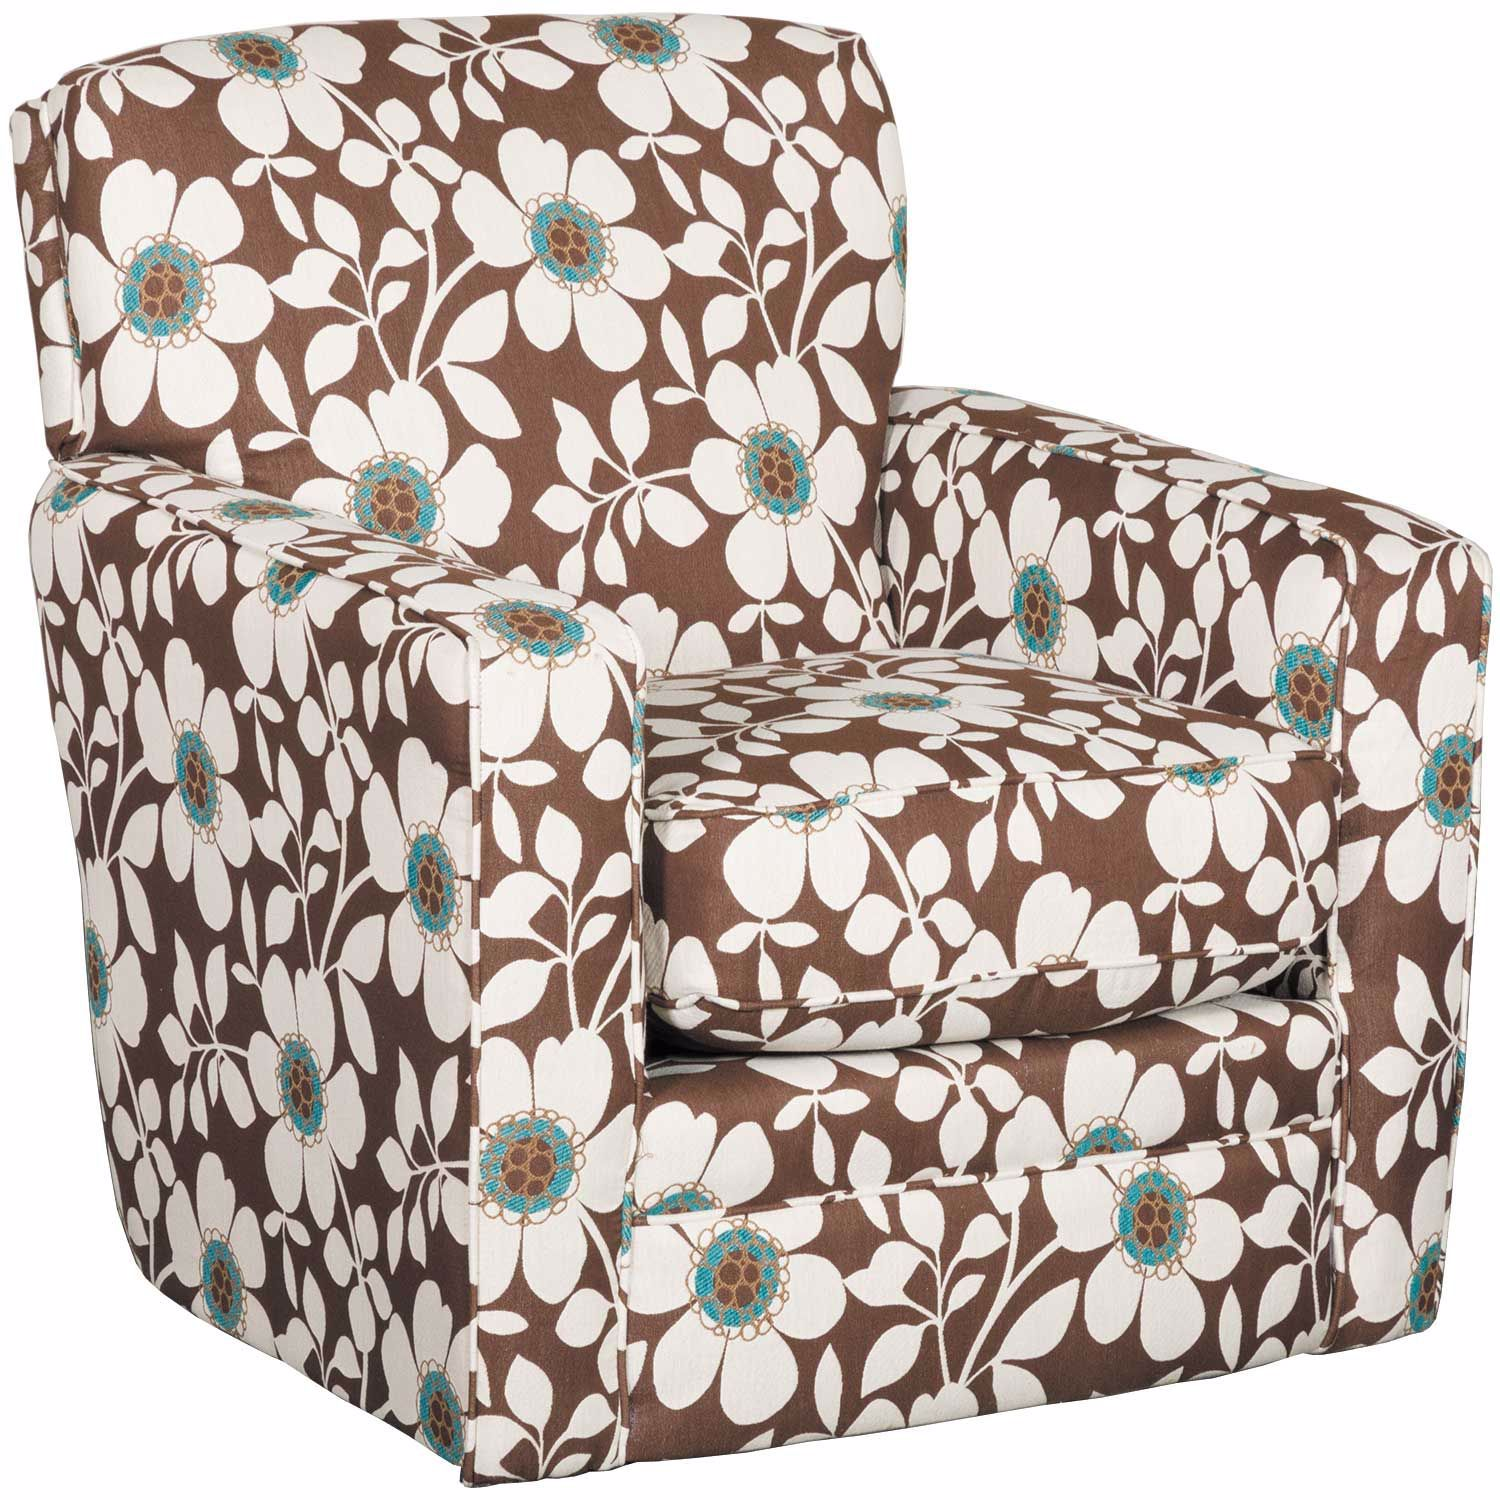 Fine Chicklet Cocoa Swivel Glider 170 Chicklet Cocoa Simmons Ocoug Best Dining Table And Chair Ideas Images Ocougorg